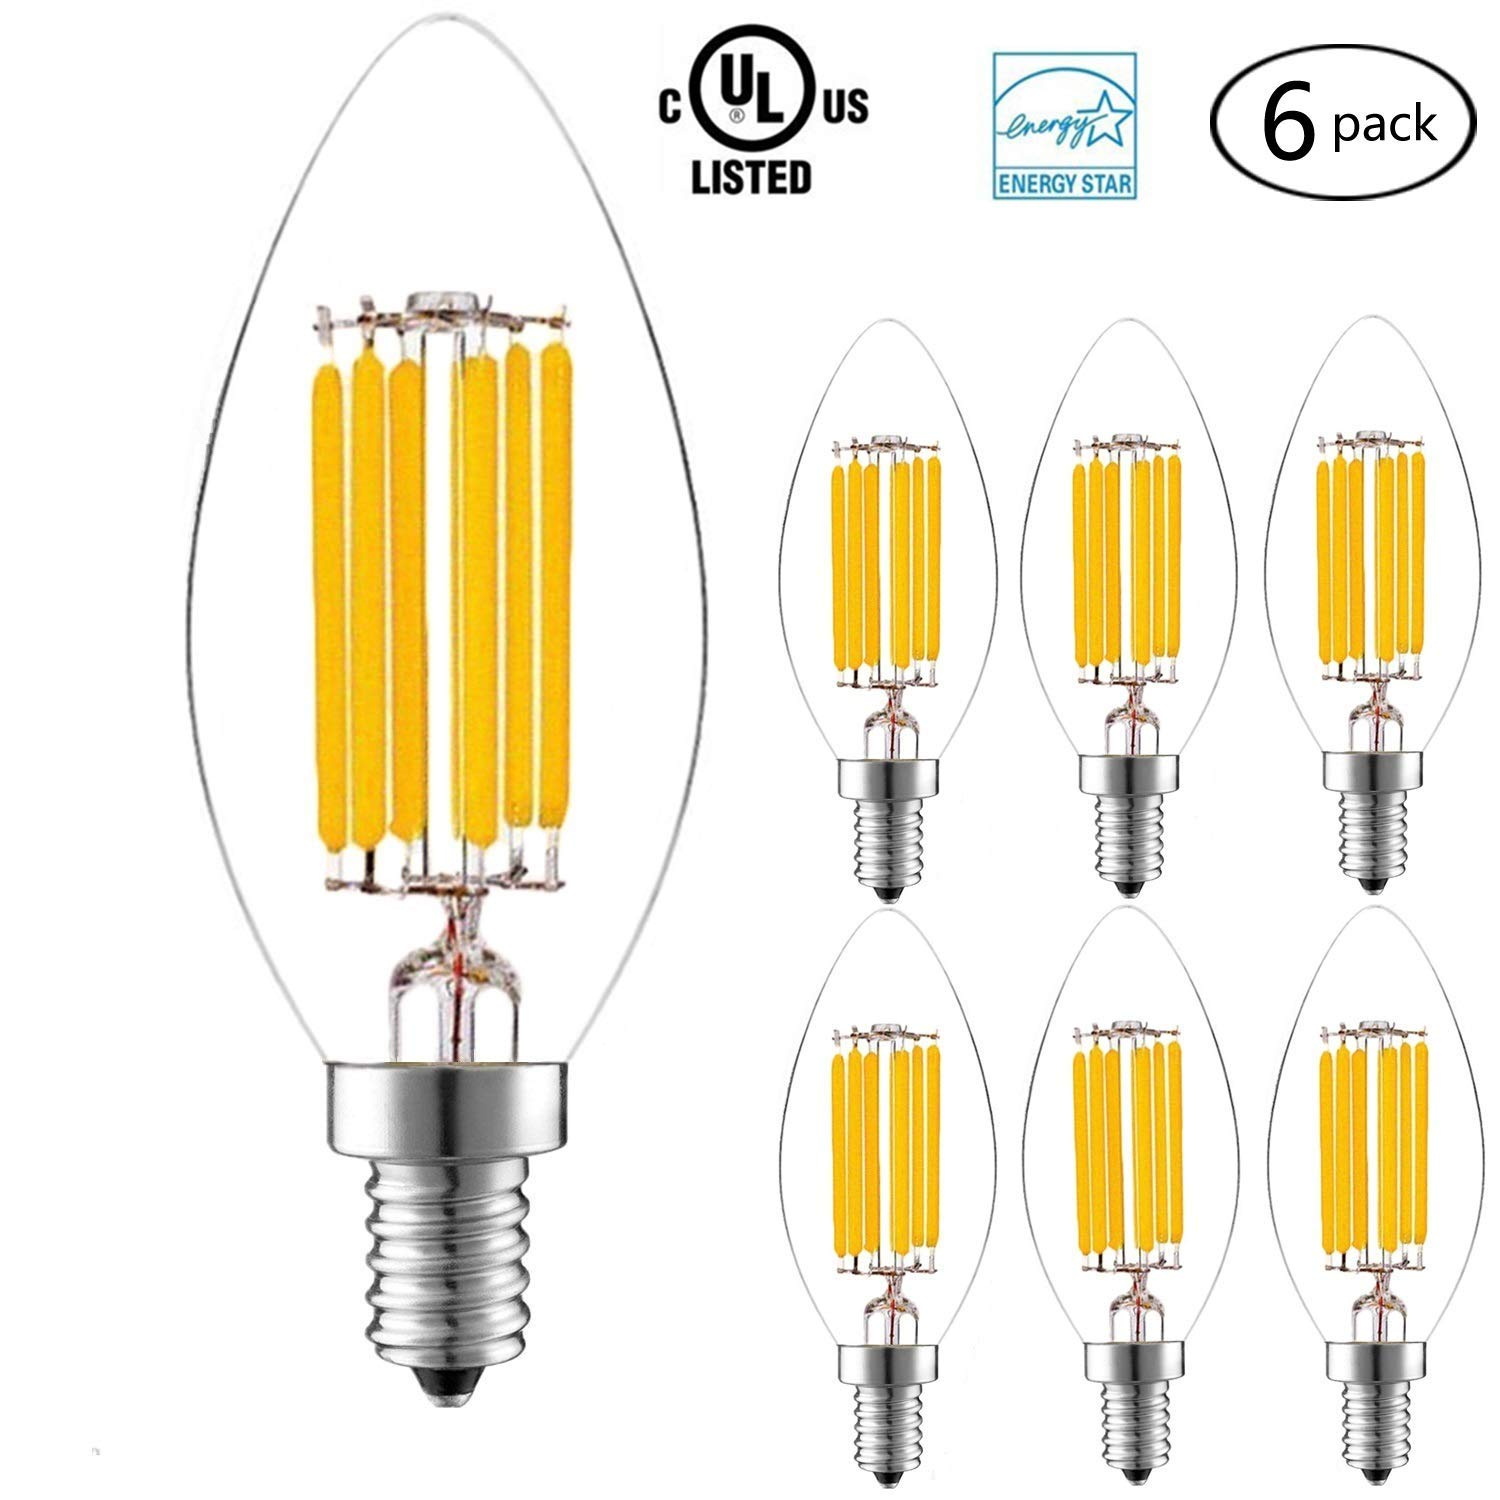 Clear Glass Bullet Top Candle Bulbs 4W E12 Base Vintage Lamp for Indoor Chandelier Or Outdoor Lighting 2700K Warm White 6 Pack Goodia Torpedo Shape Candelabra LED Bulbs